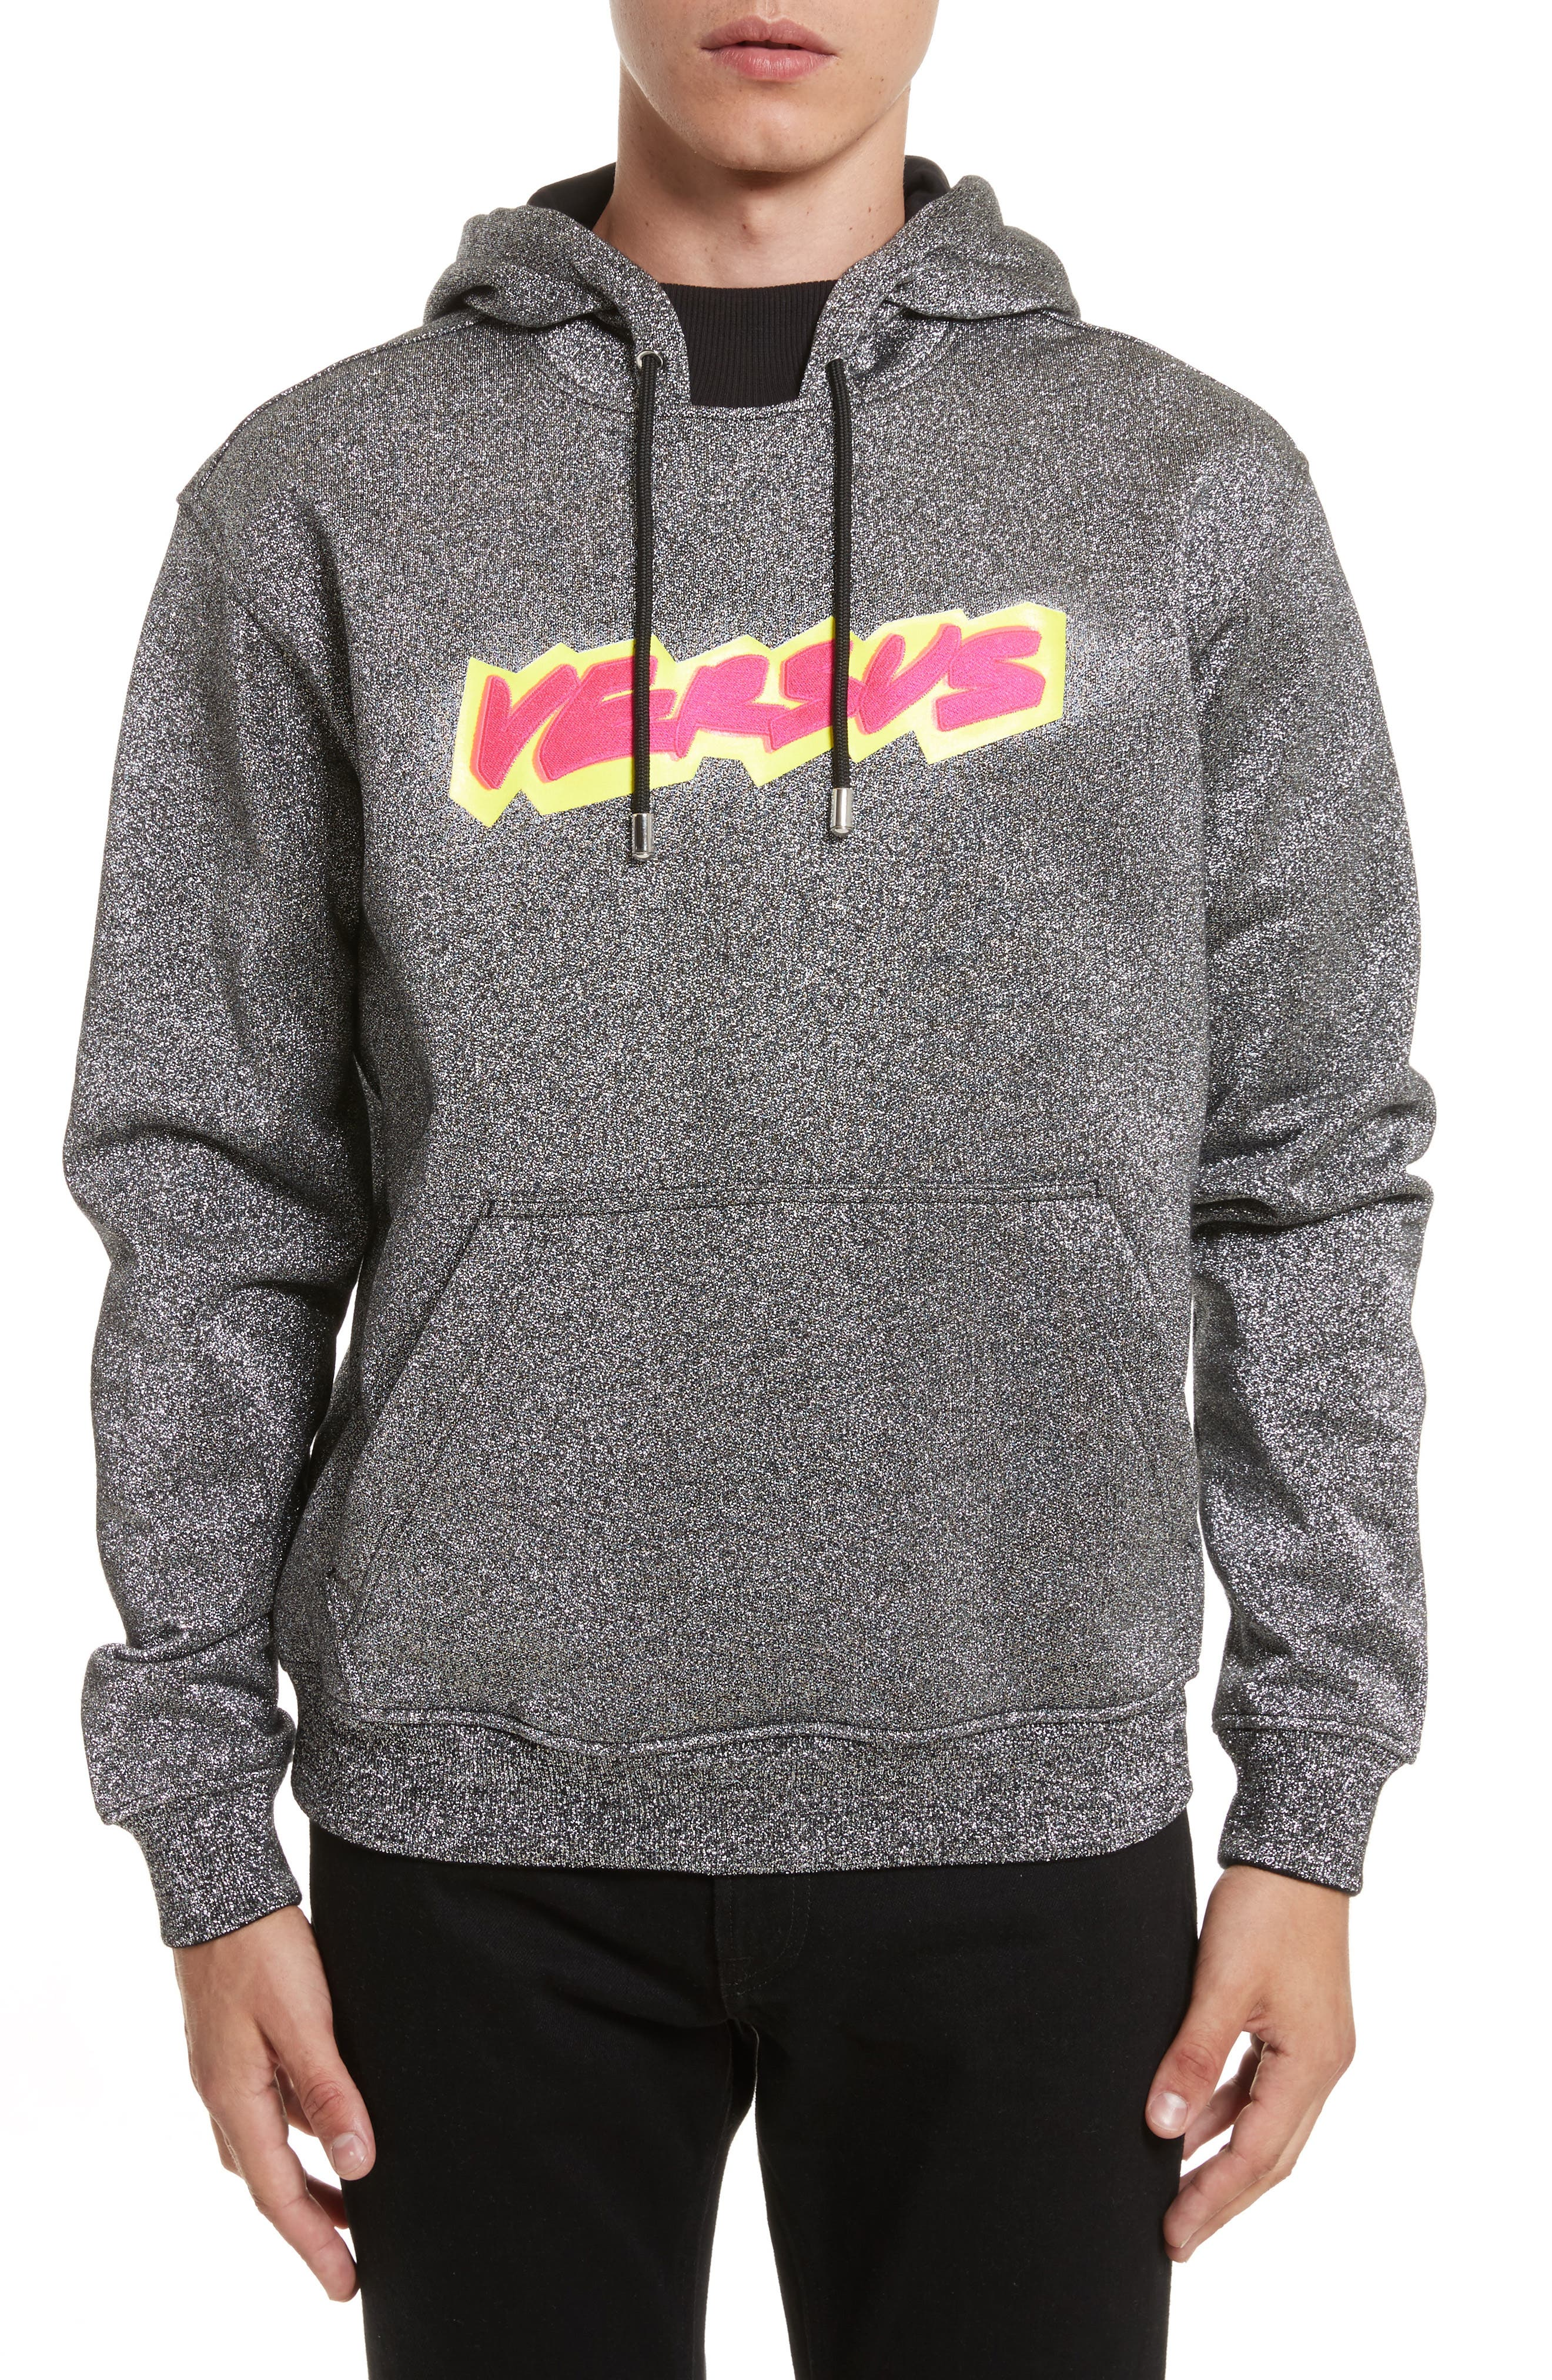 VERSUS by Versace Glitter Hoodie,                             Main thumbnail 1, color,                             044